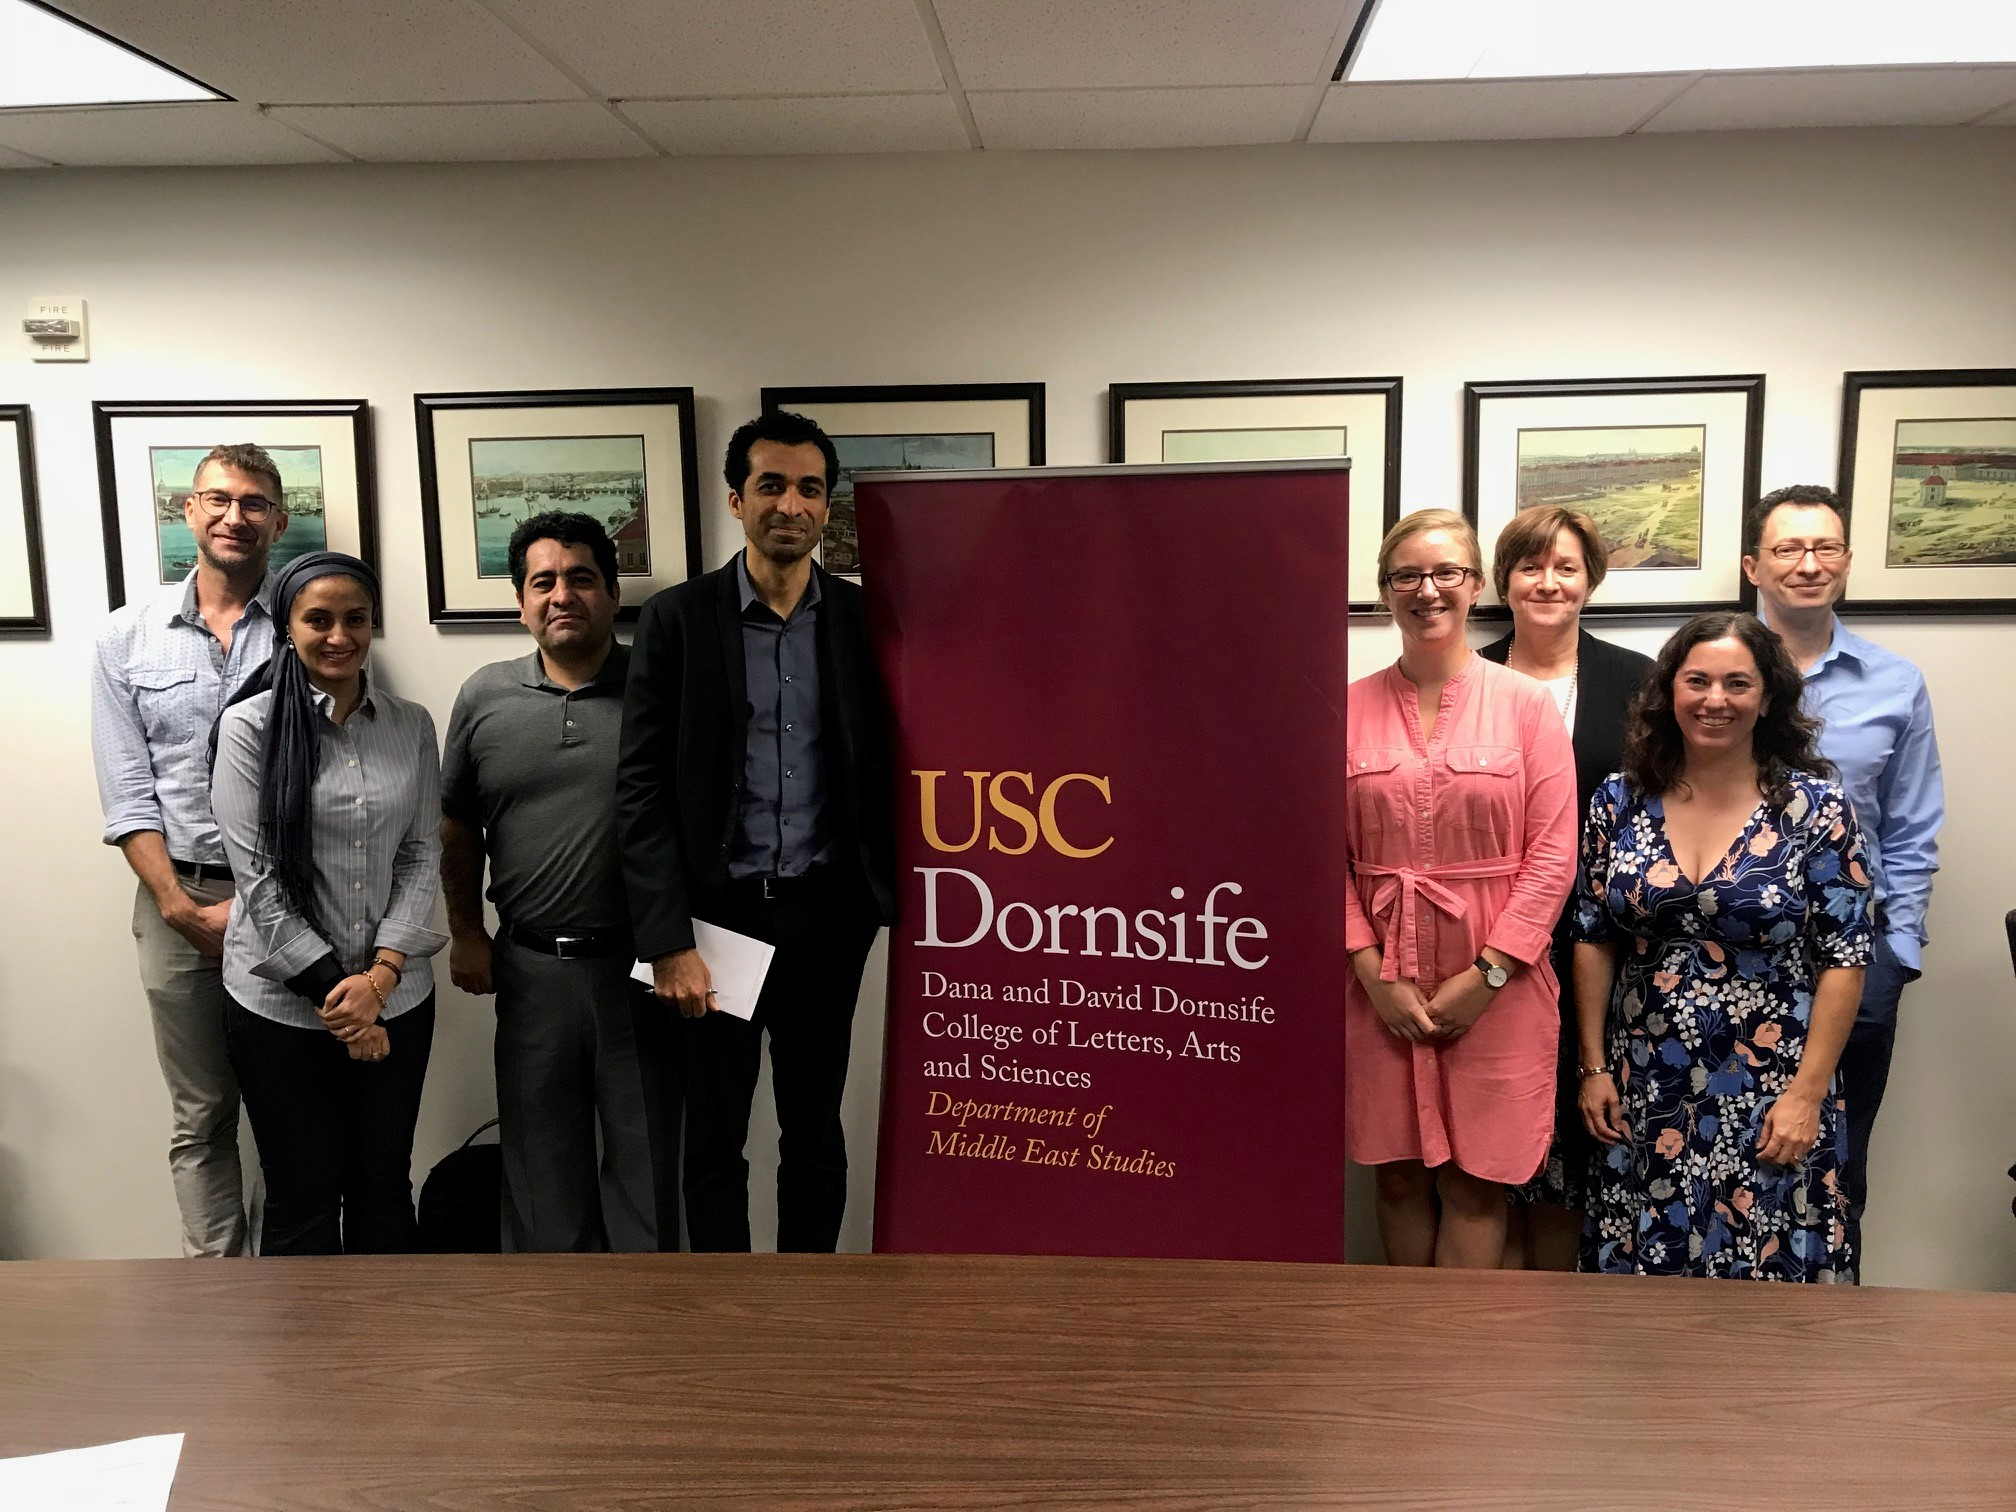 Faculty and Staff of the Department of Middle East Studies, USC.